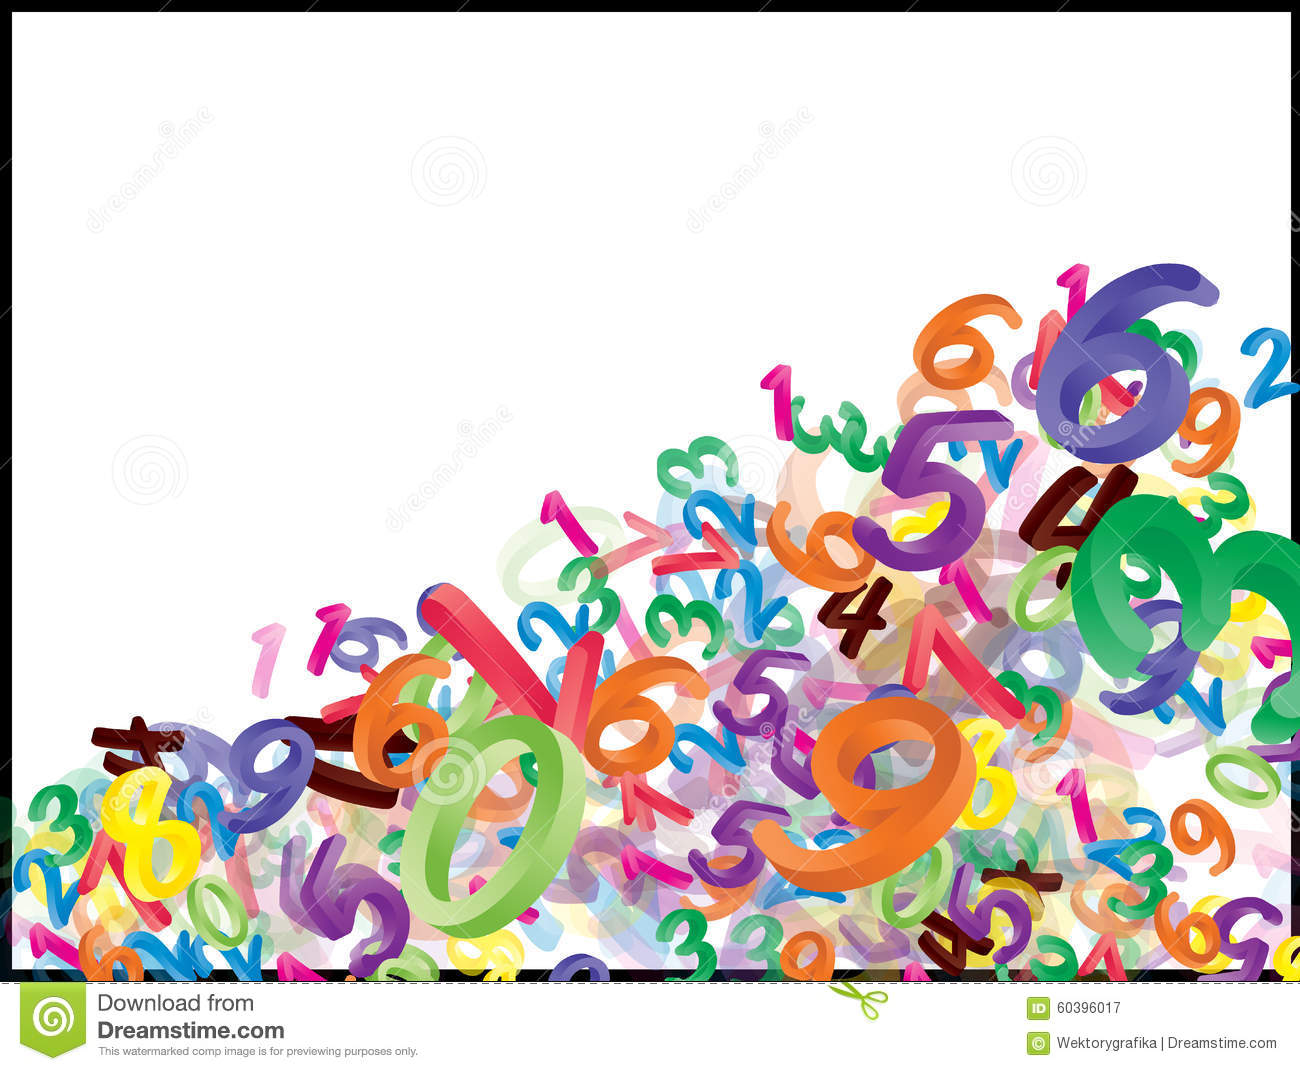 Wallpaper Border Falling Off Background Of Falling Cartoon Numbers Digits Funny